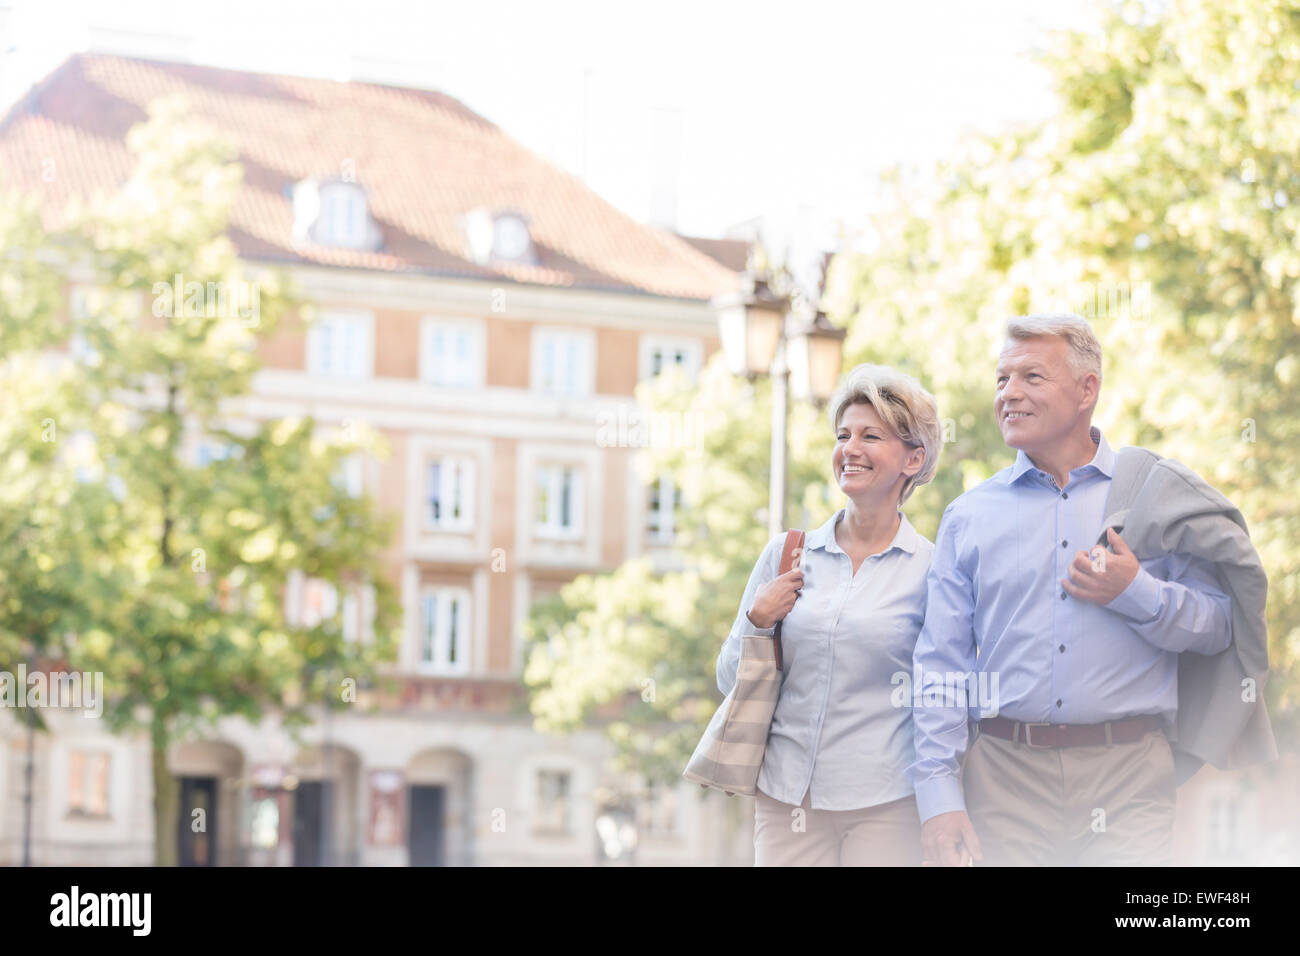 Happy middle-aged couple walking in city - Stock Image